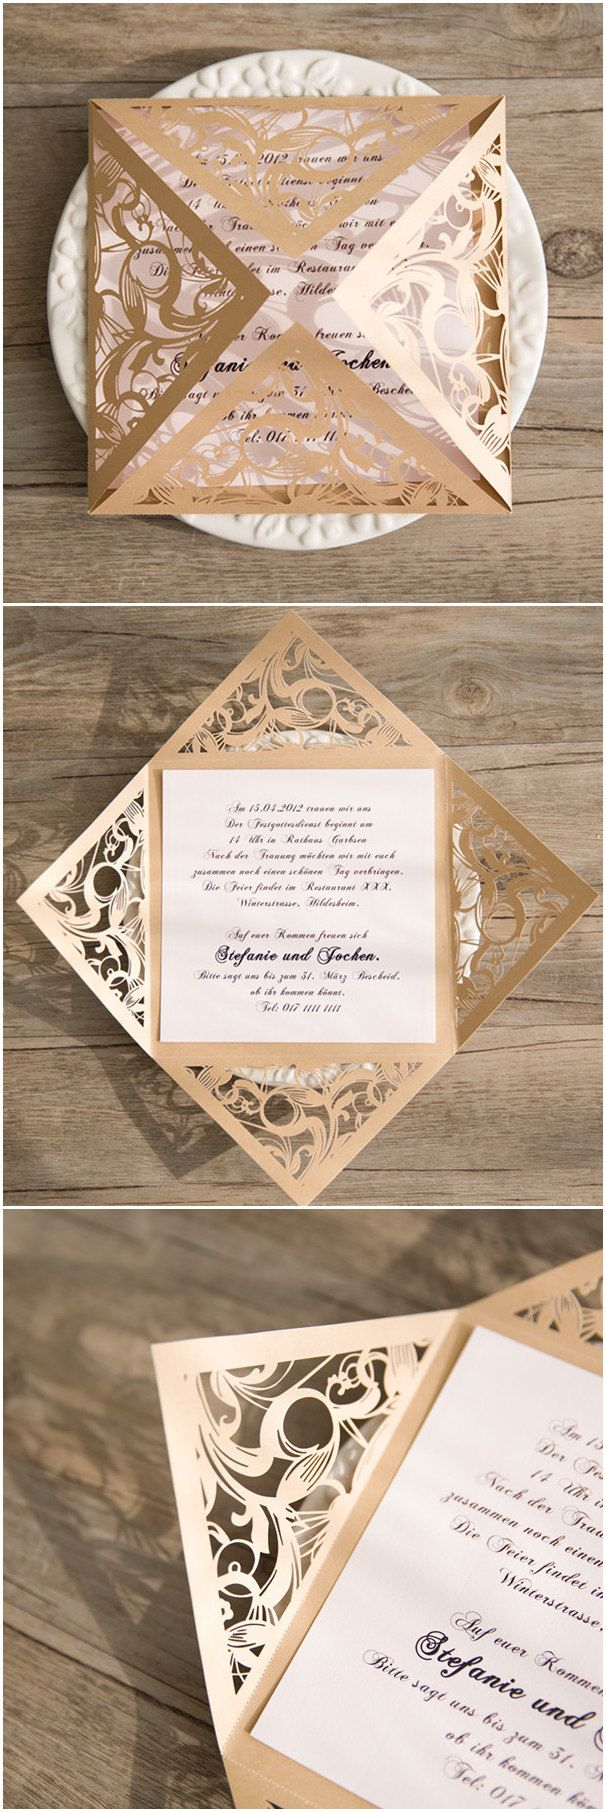 wedding shower invitations omaha%0A elegant blush pink and gold laser cut wedding invitations